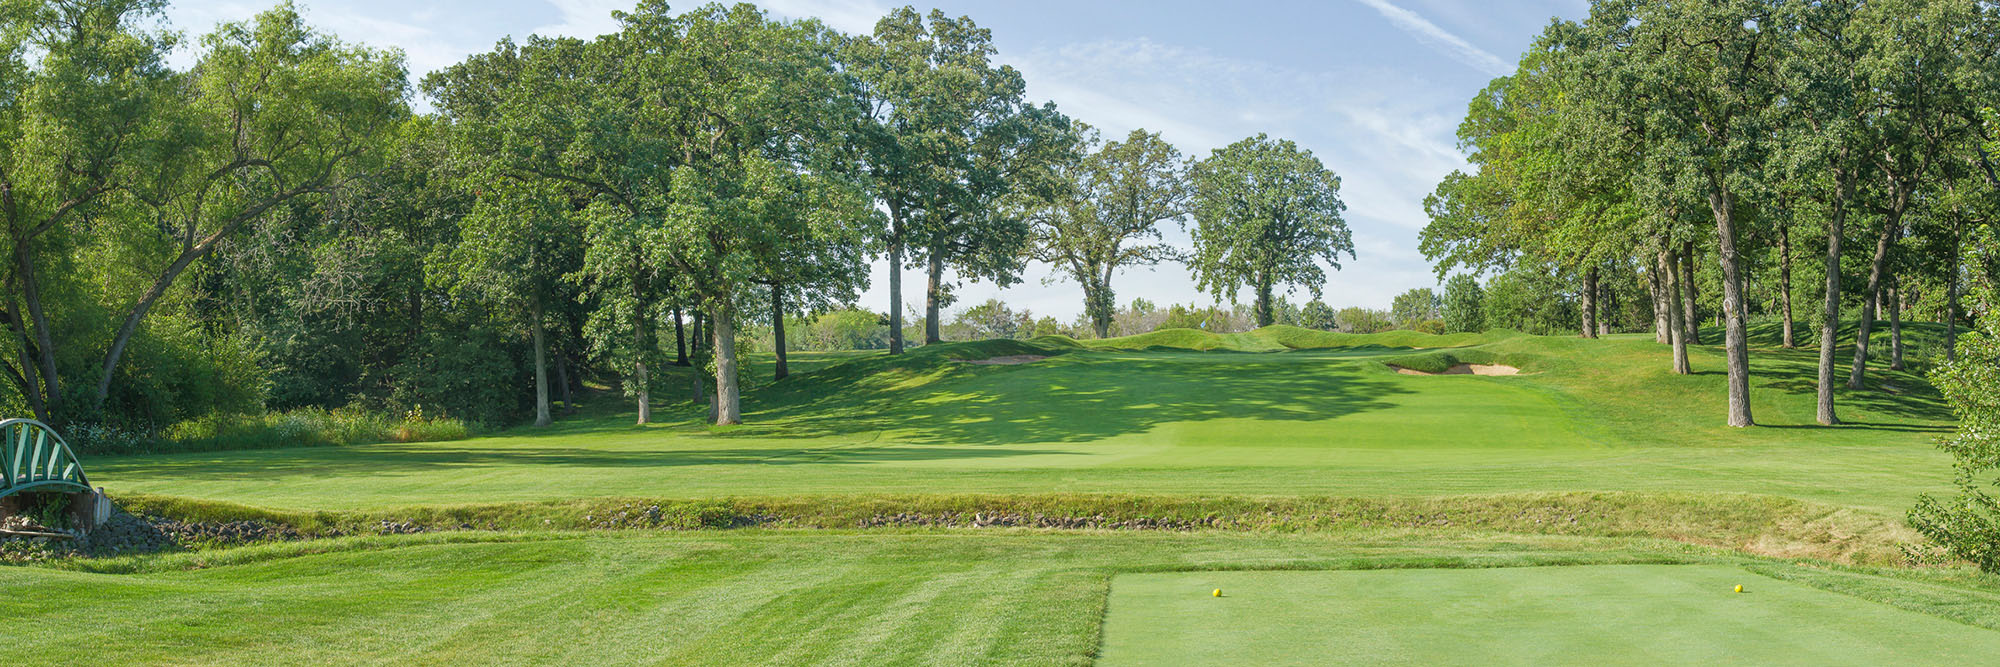 Golf Course Image - Olympia Fields South No. 12